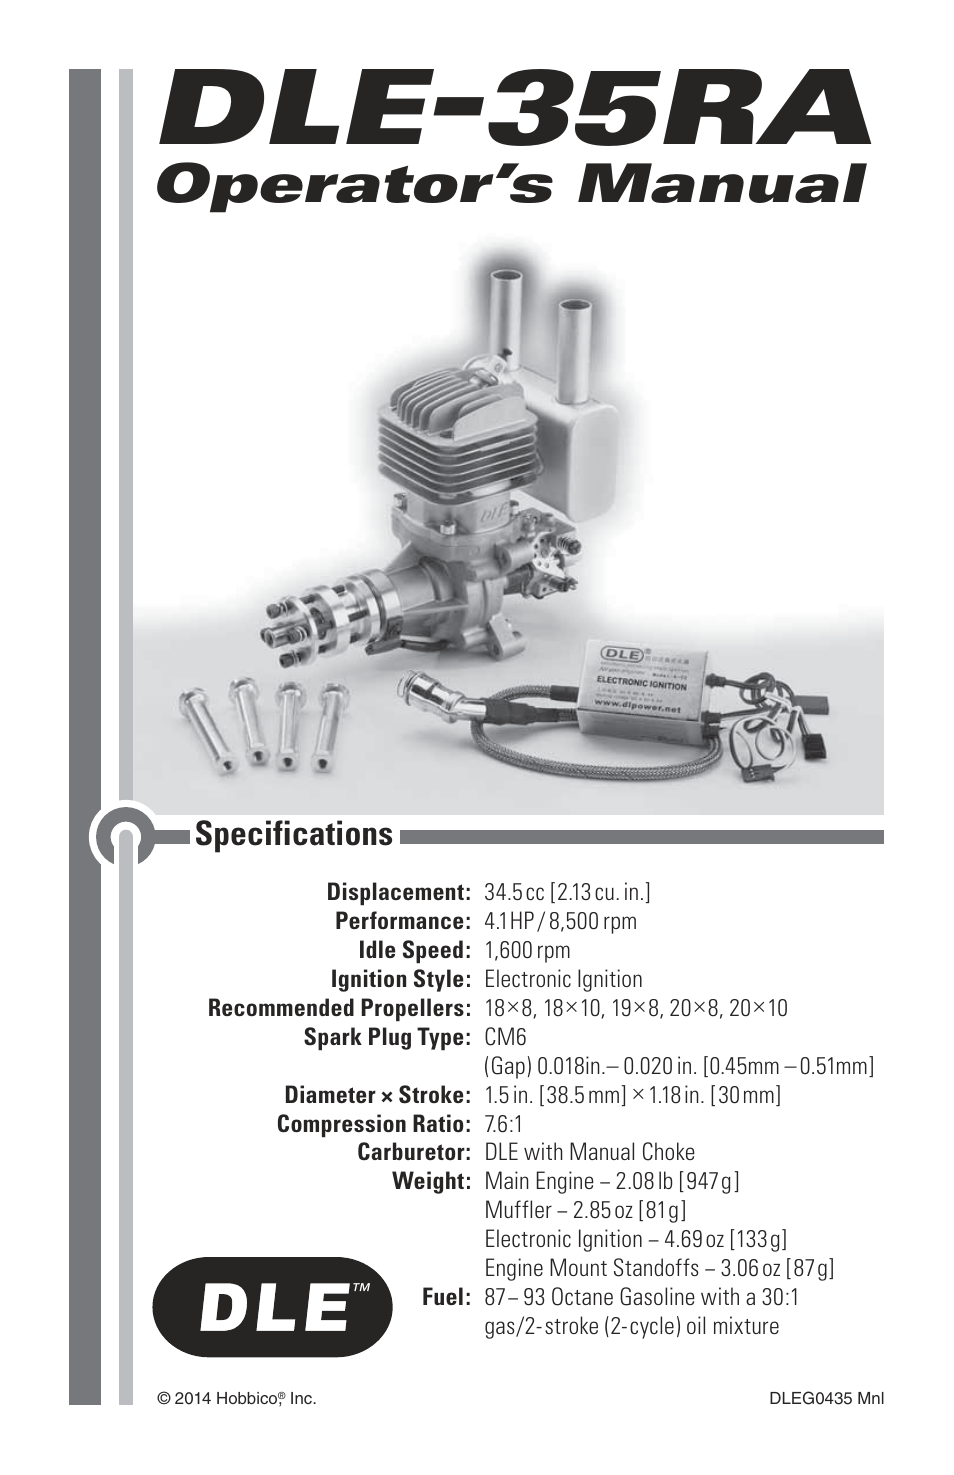 93 Octane Gas >> DLE 35RA User Manual | 24 pages